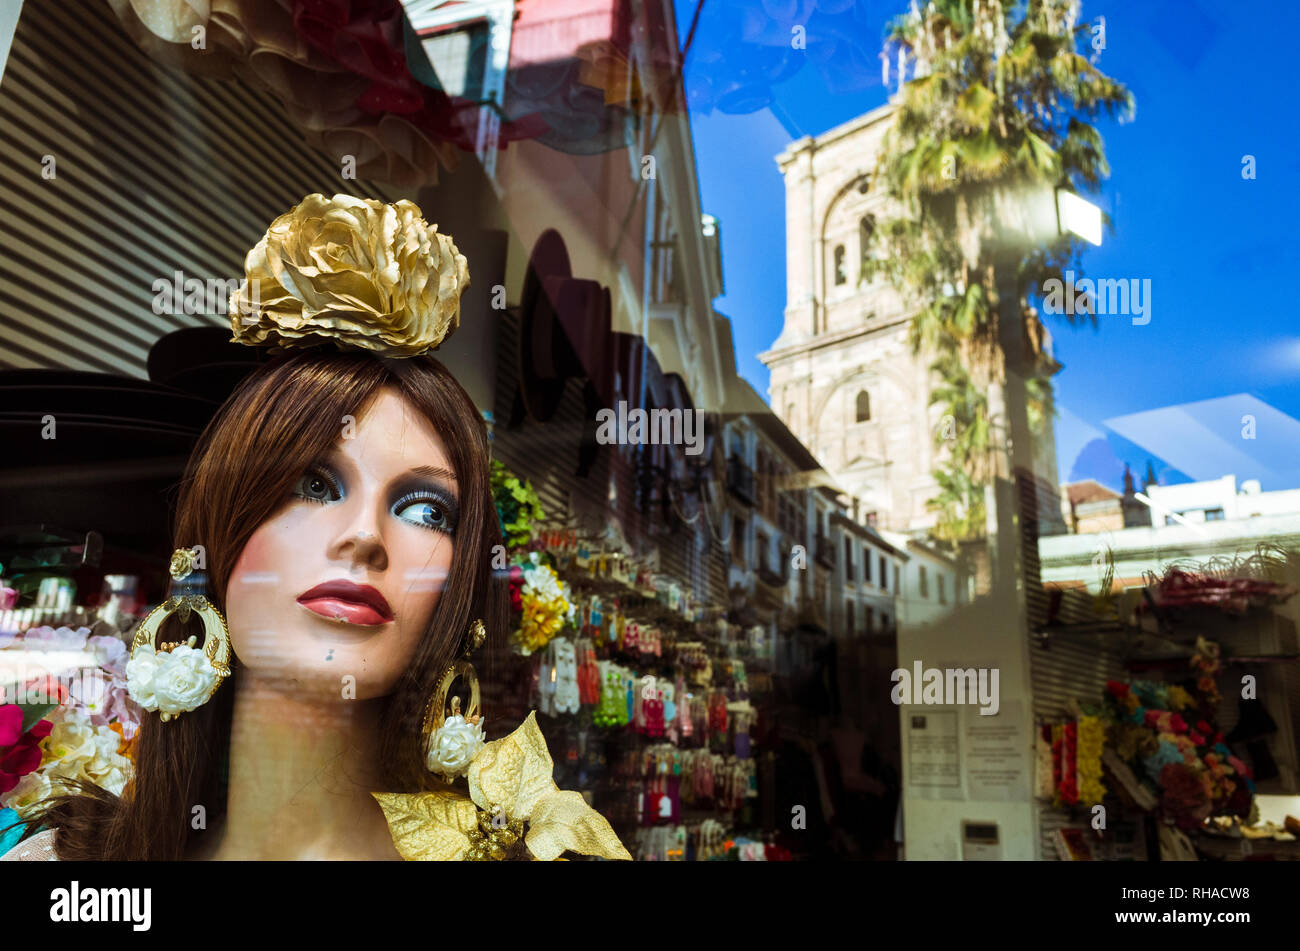 Granada, Andalusia, Spain : Window display with female mannequin in Rocio Flamenco fashion and reflections of the cathedral and Granada historic cente - Stock Image